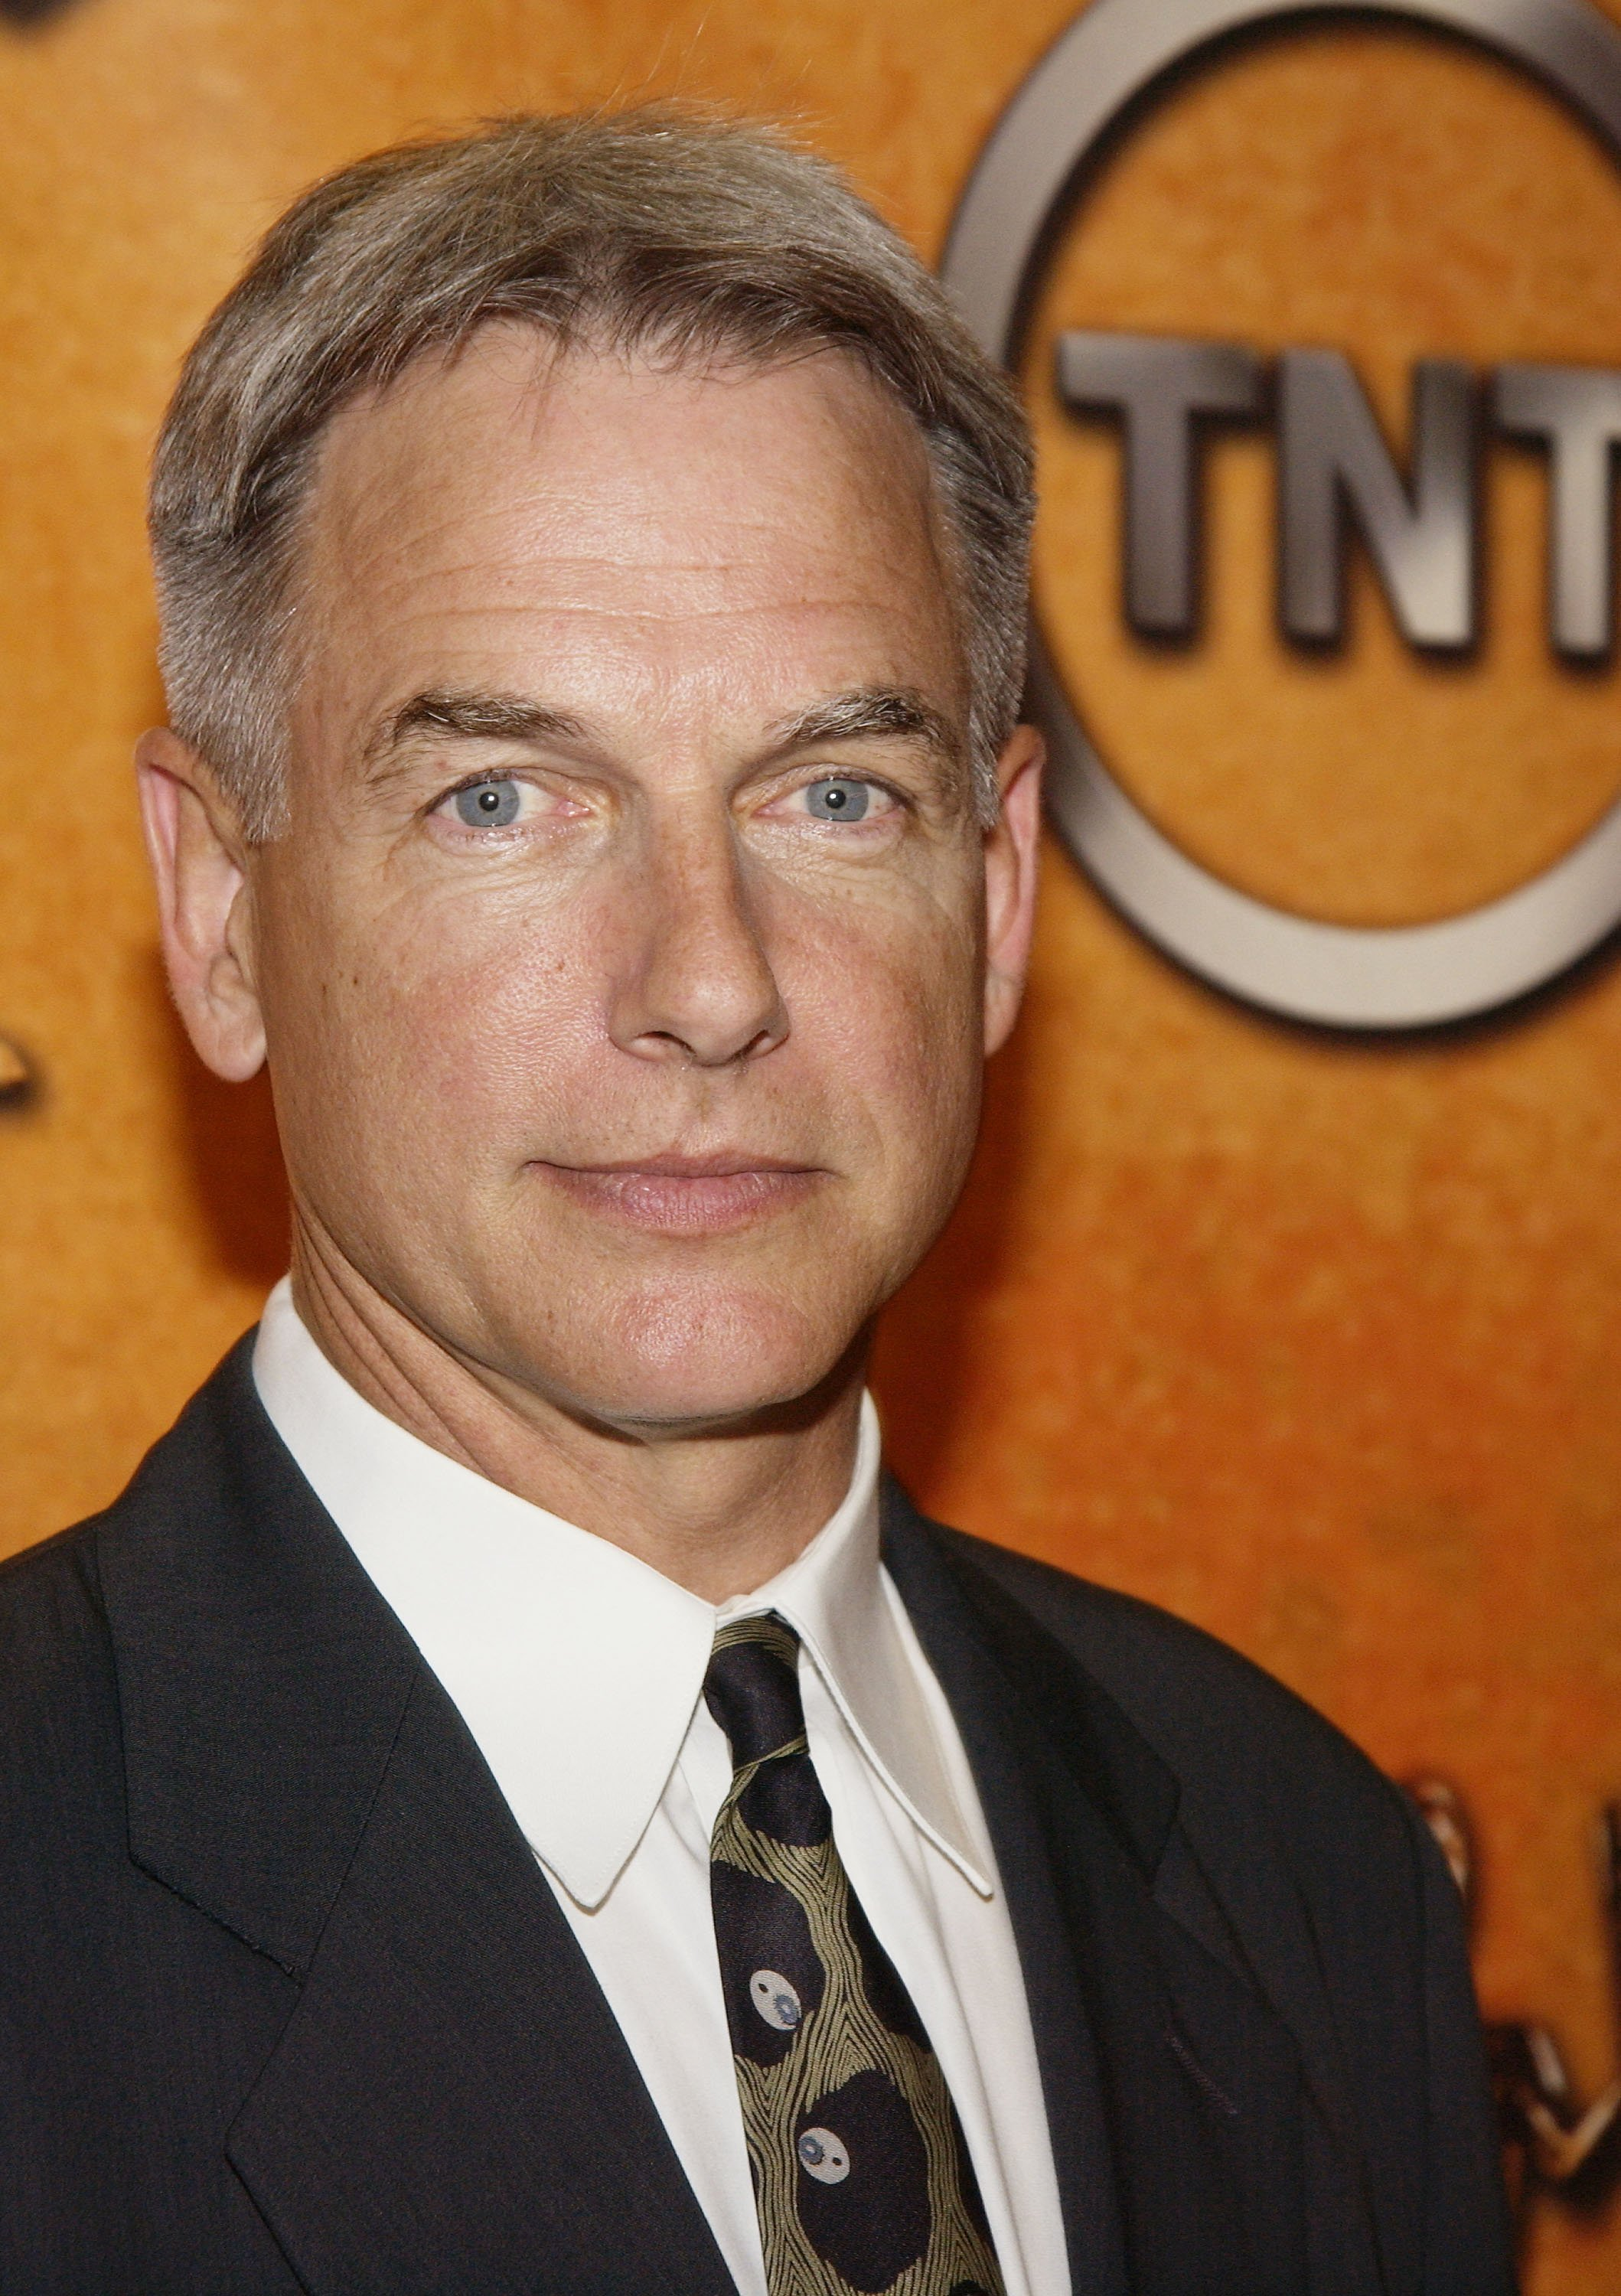 Mark Harmon, 10th Annual Screen Actors Guild Awards Nominations in Hollywood, Kalifornien am 15. Januar, 2004 | Quelle: Getty Images